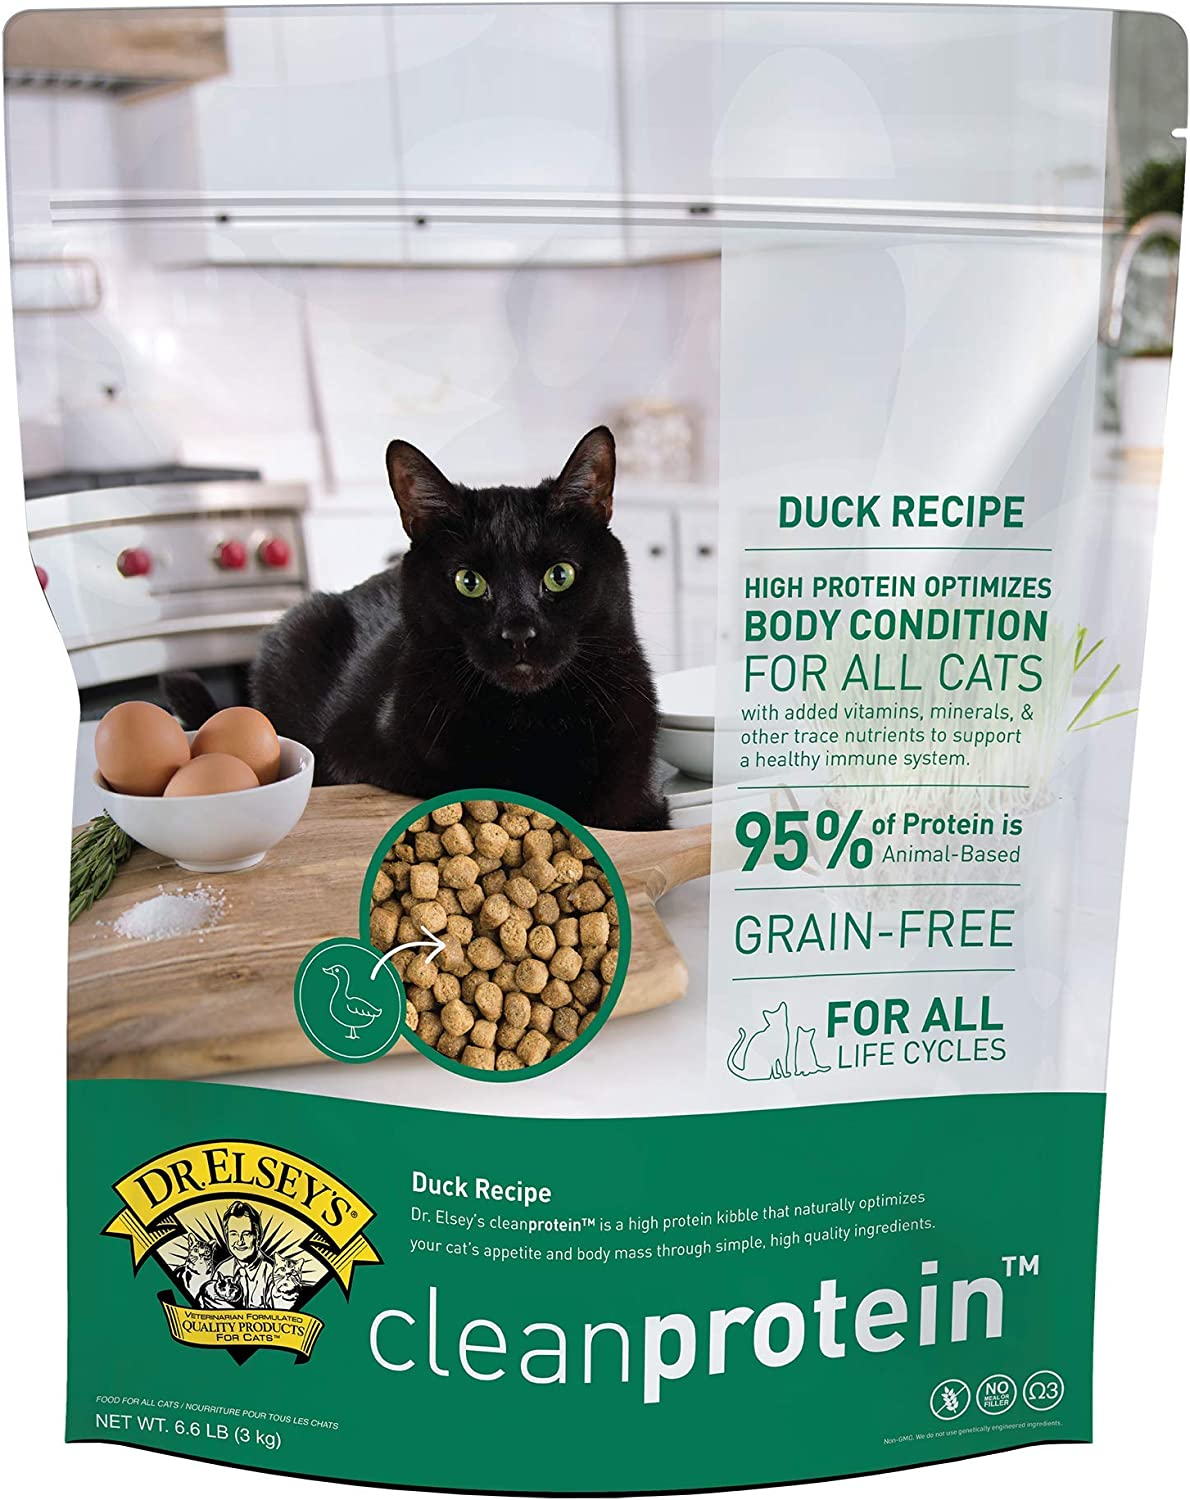 Dr. Elsey's Cleanprotein Dry Kibble Duck